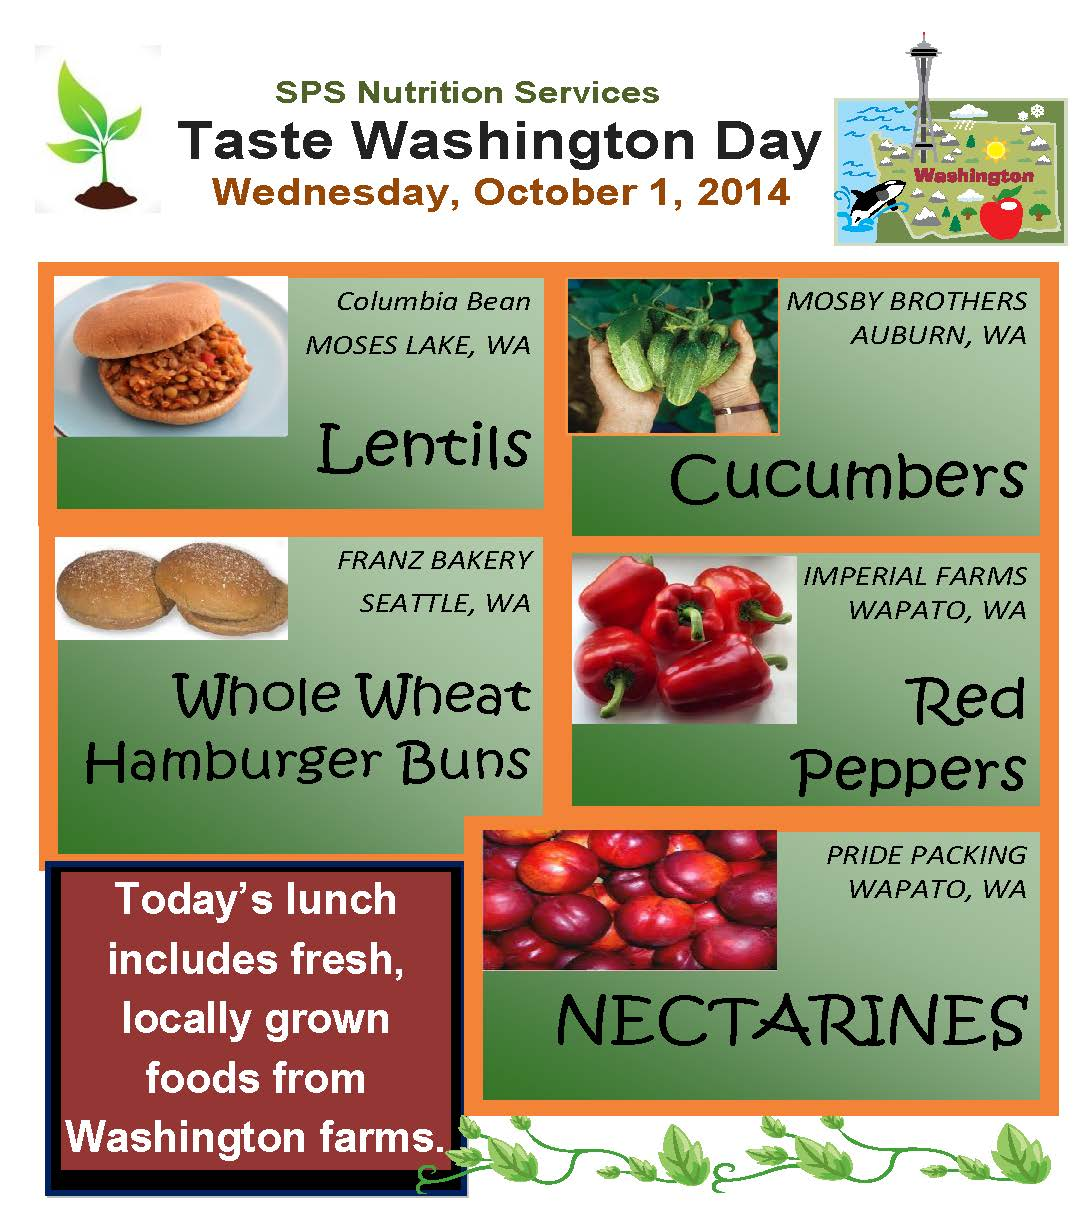 lentils from Moses Lake Cucumbers from Auburn and Nectarines and red peppers from Wapato